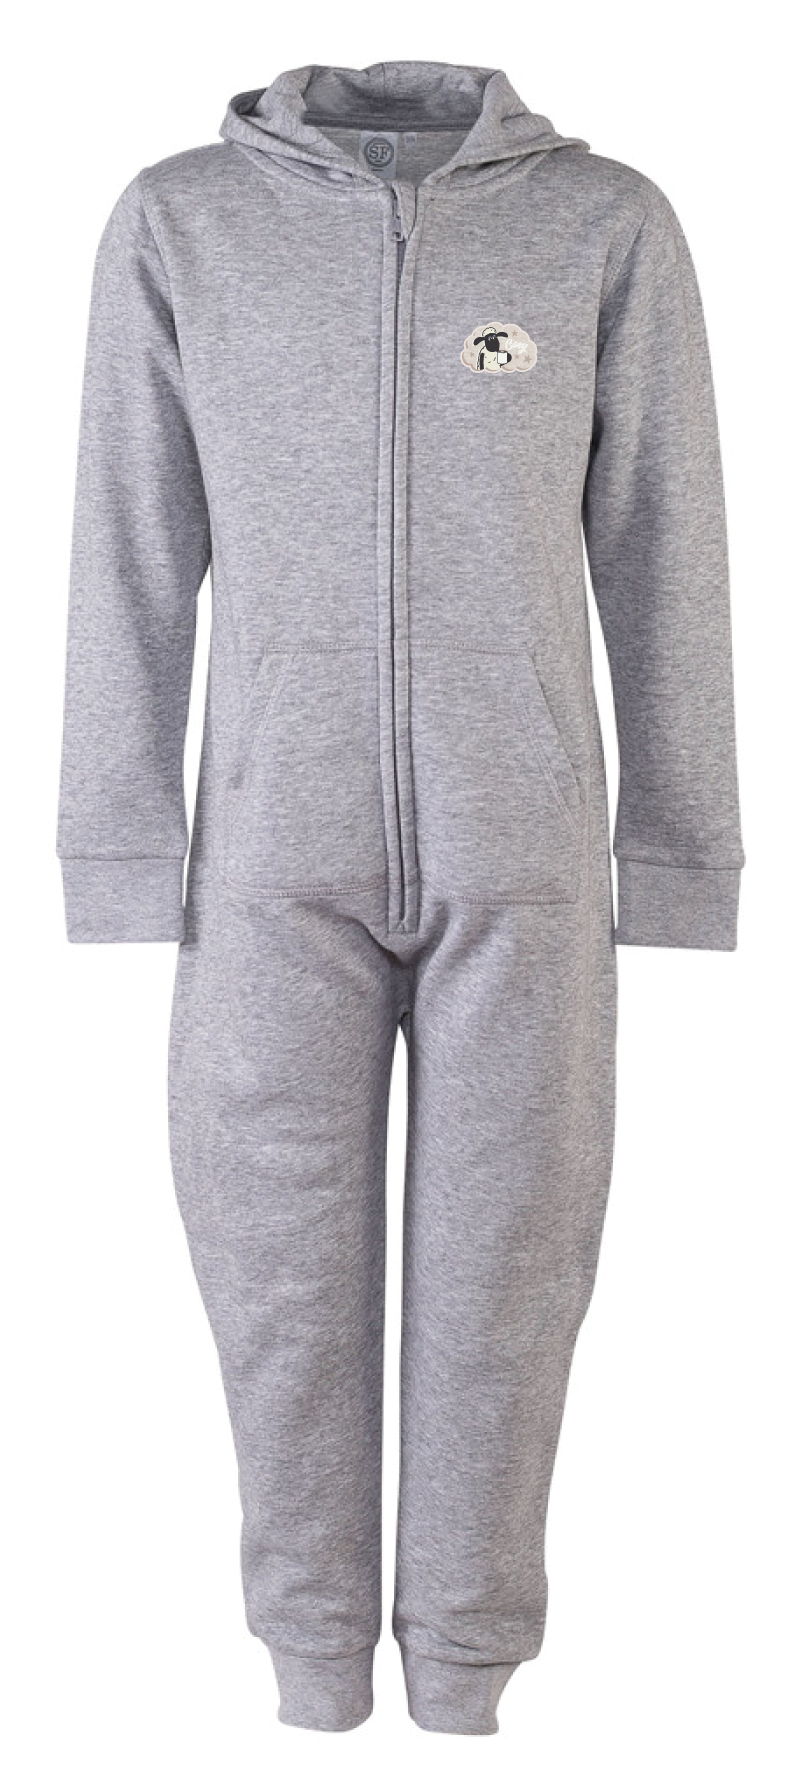 Shaun Kids Onesie Grey - Various Designs